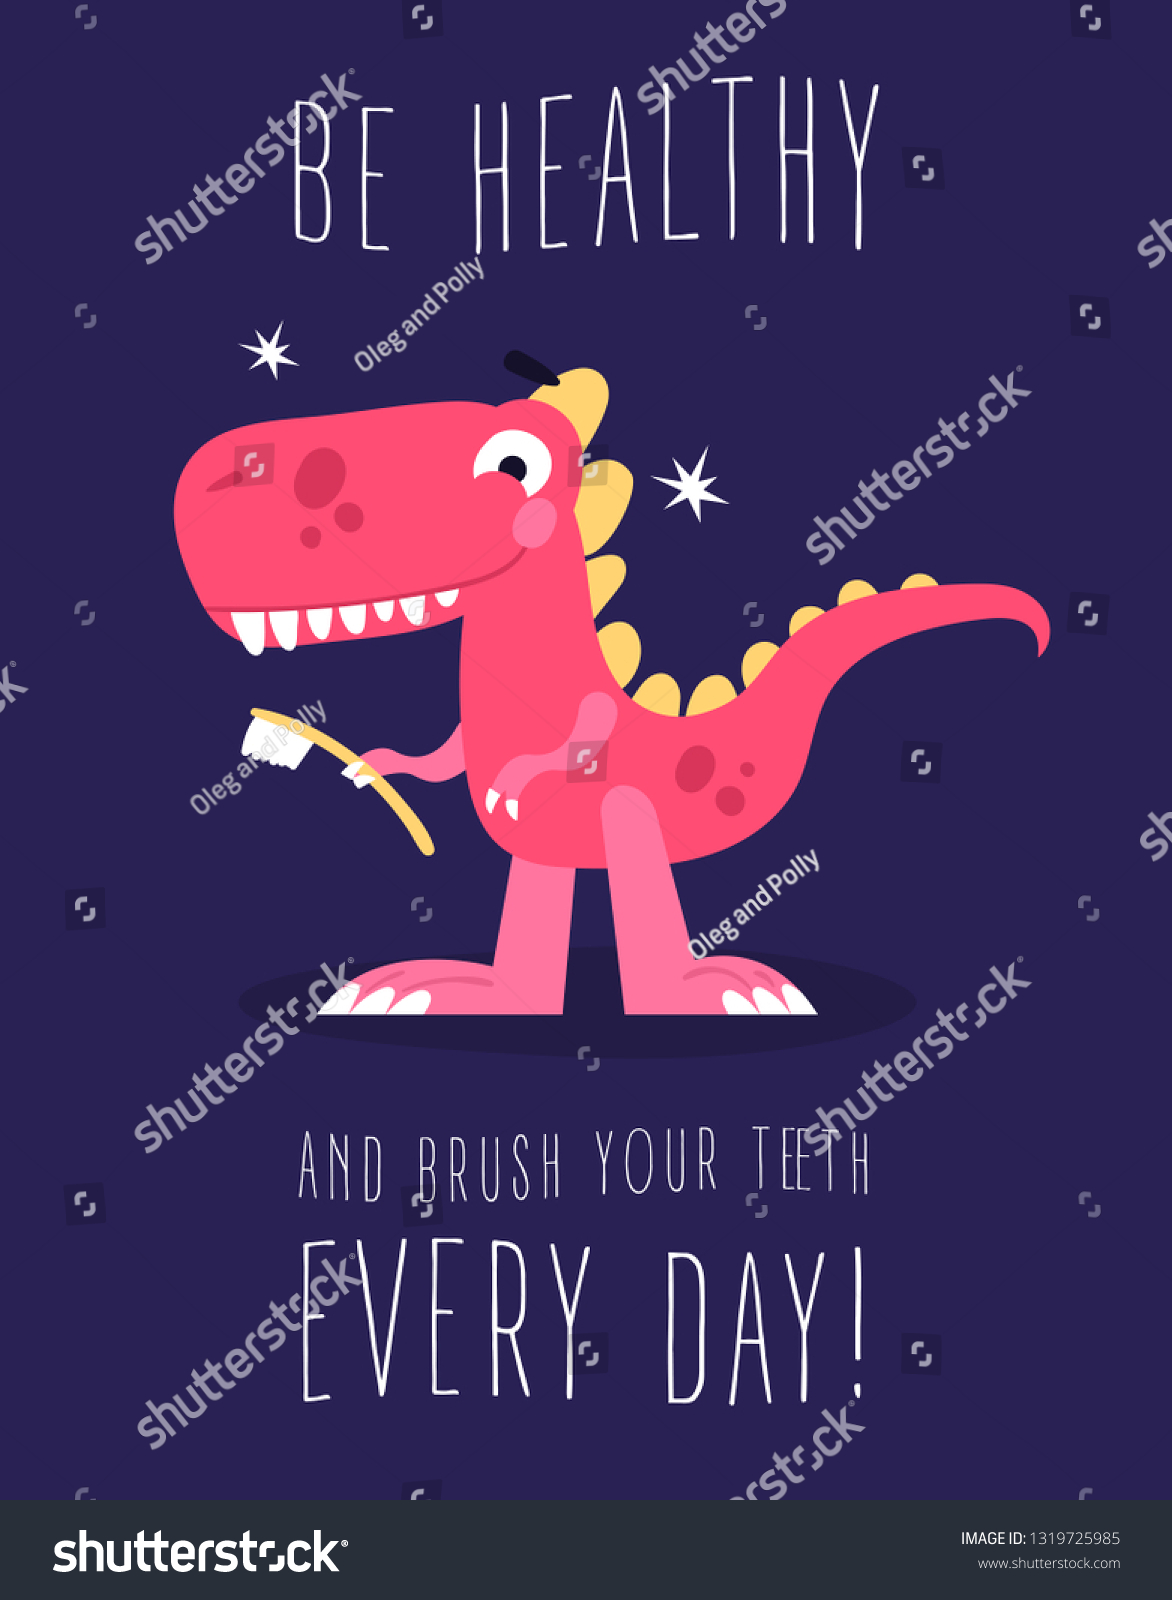 Cute Dinosaur Tooth Brush Childrens Book Stock Vector (Royalty Free